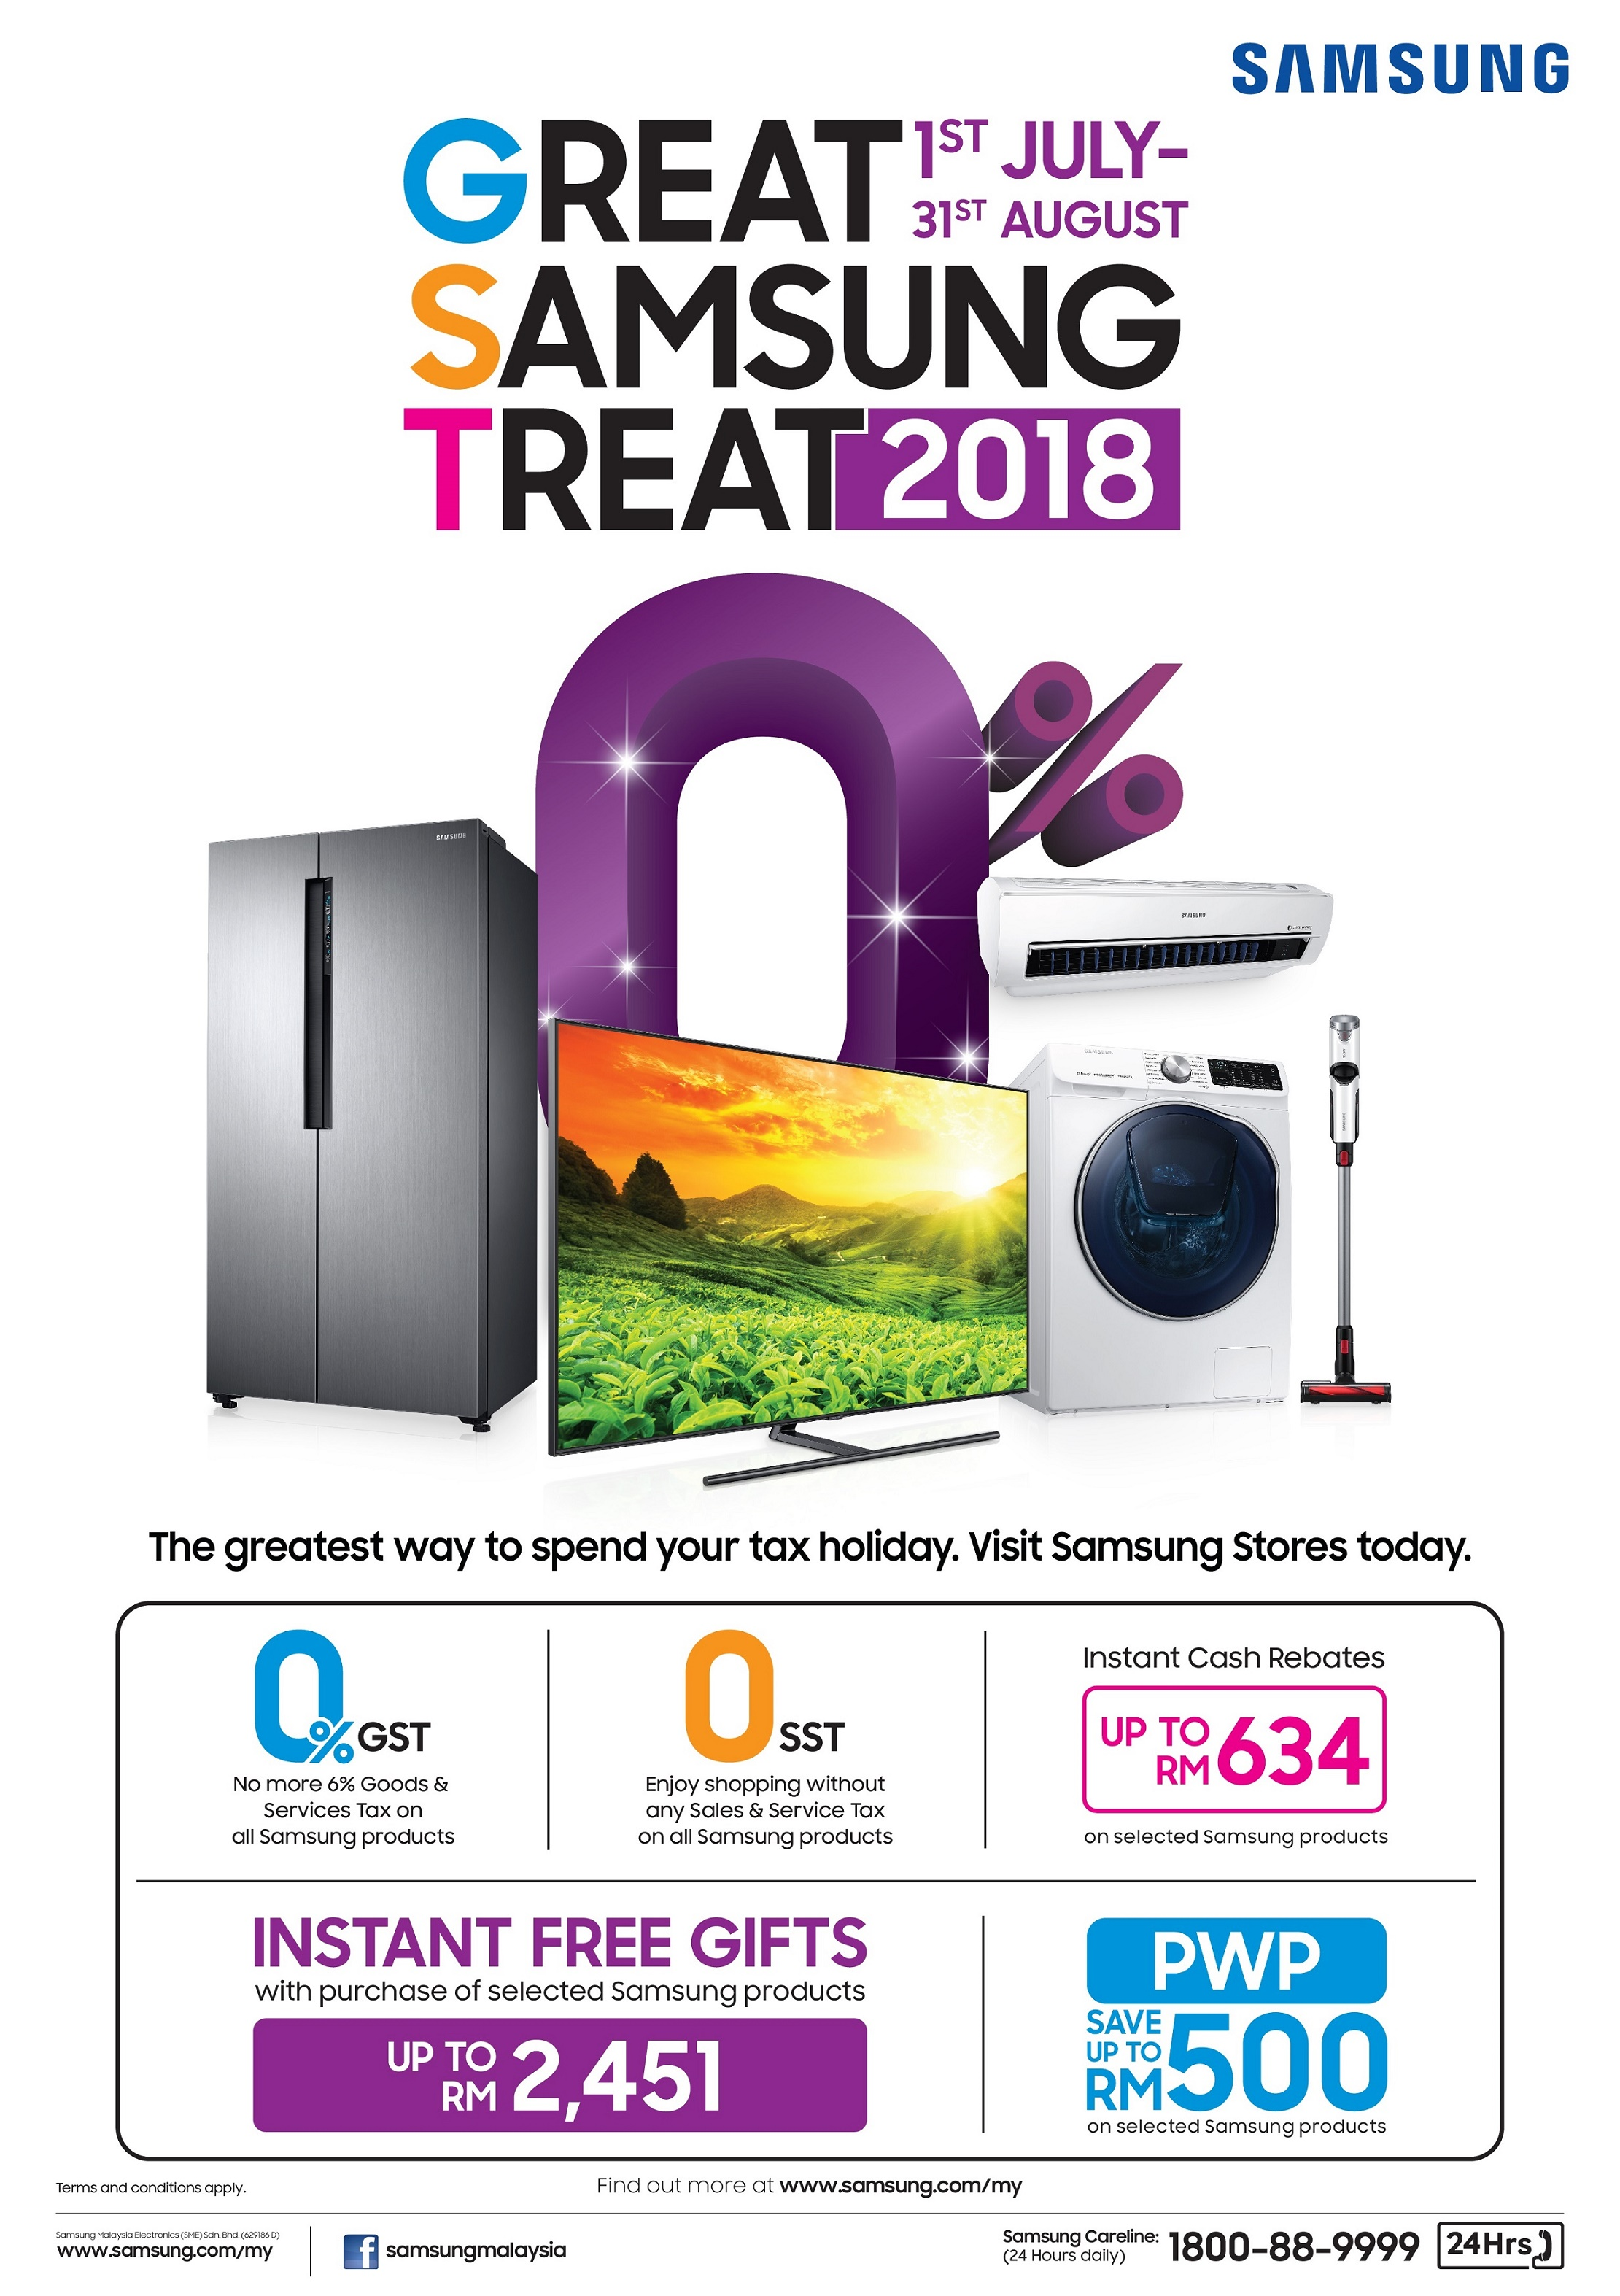 Great Samsung Treat Promo_KV 2018